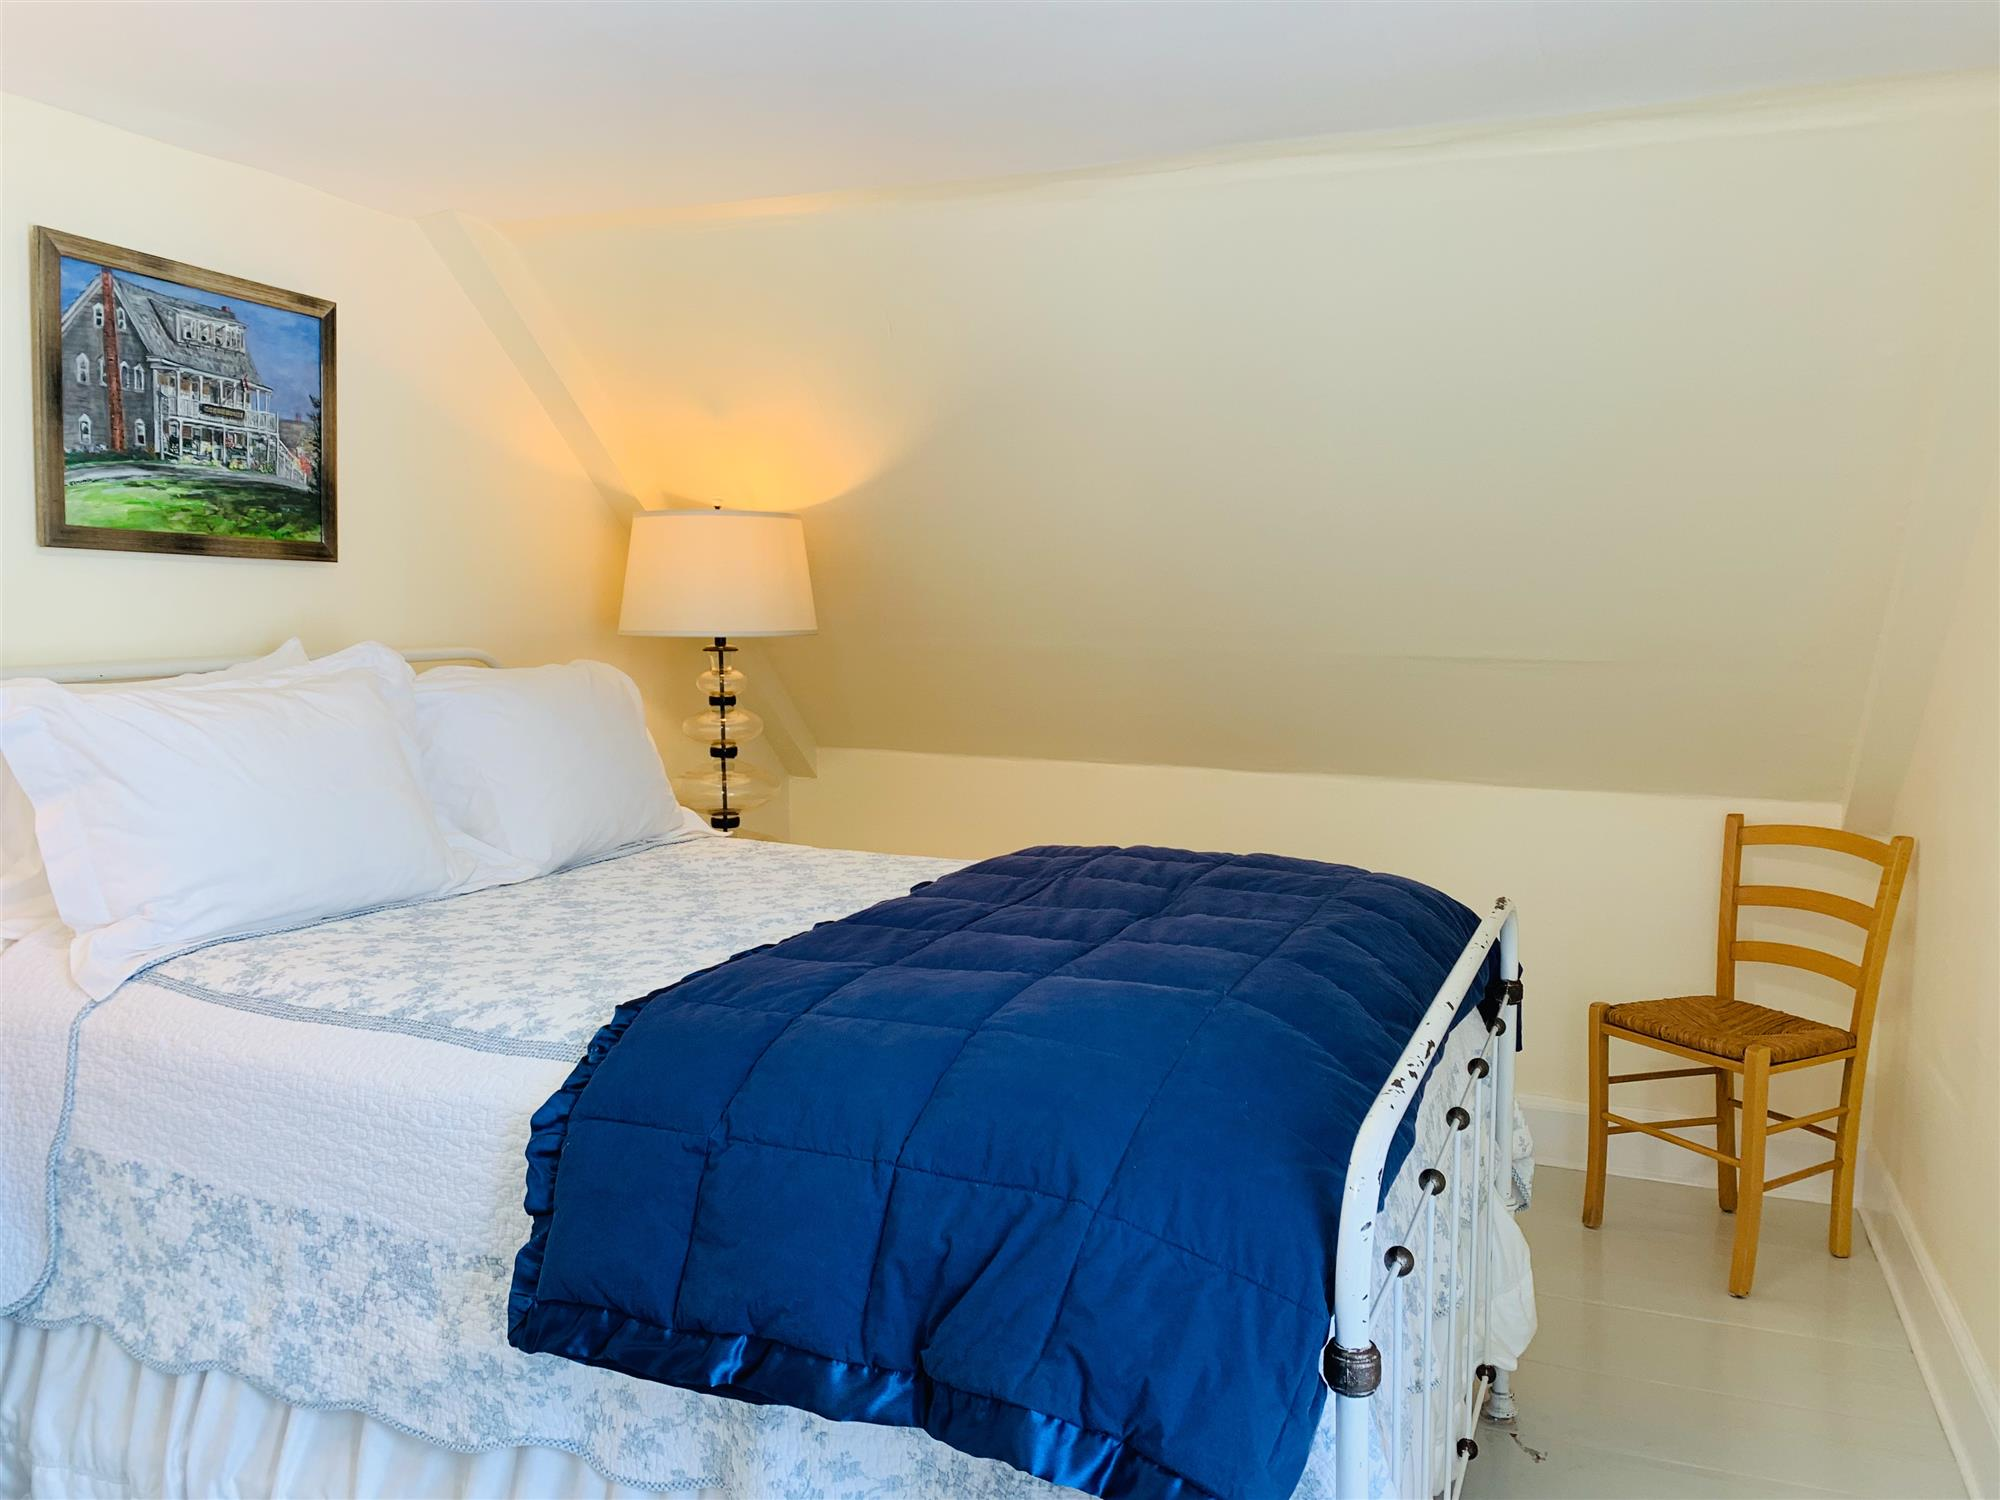 Image for 19) Raspberry Island (Room 14) at Ocean House